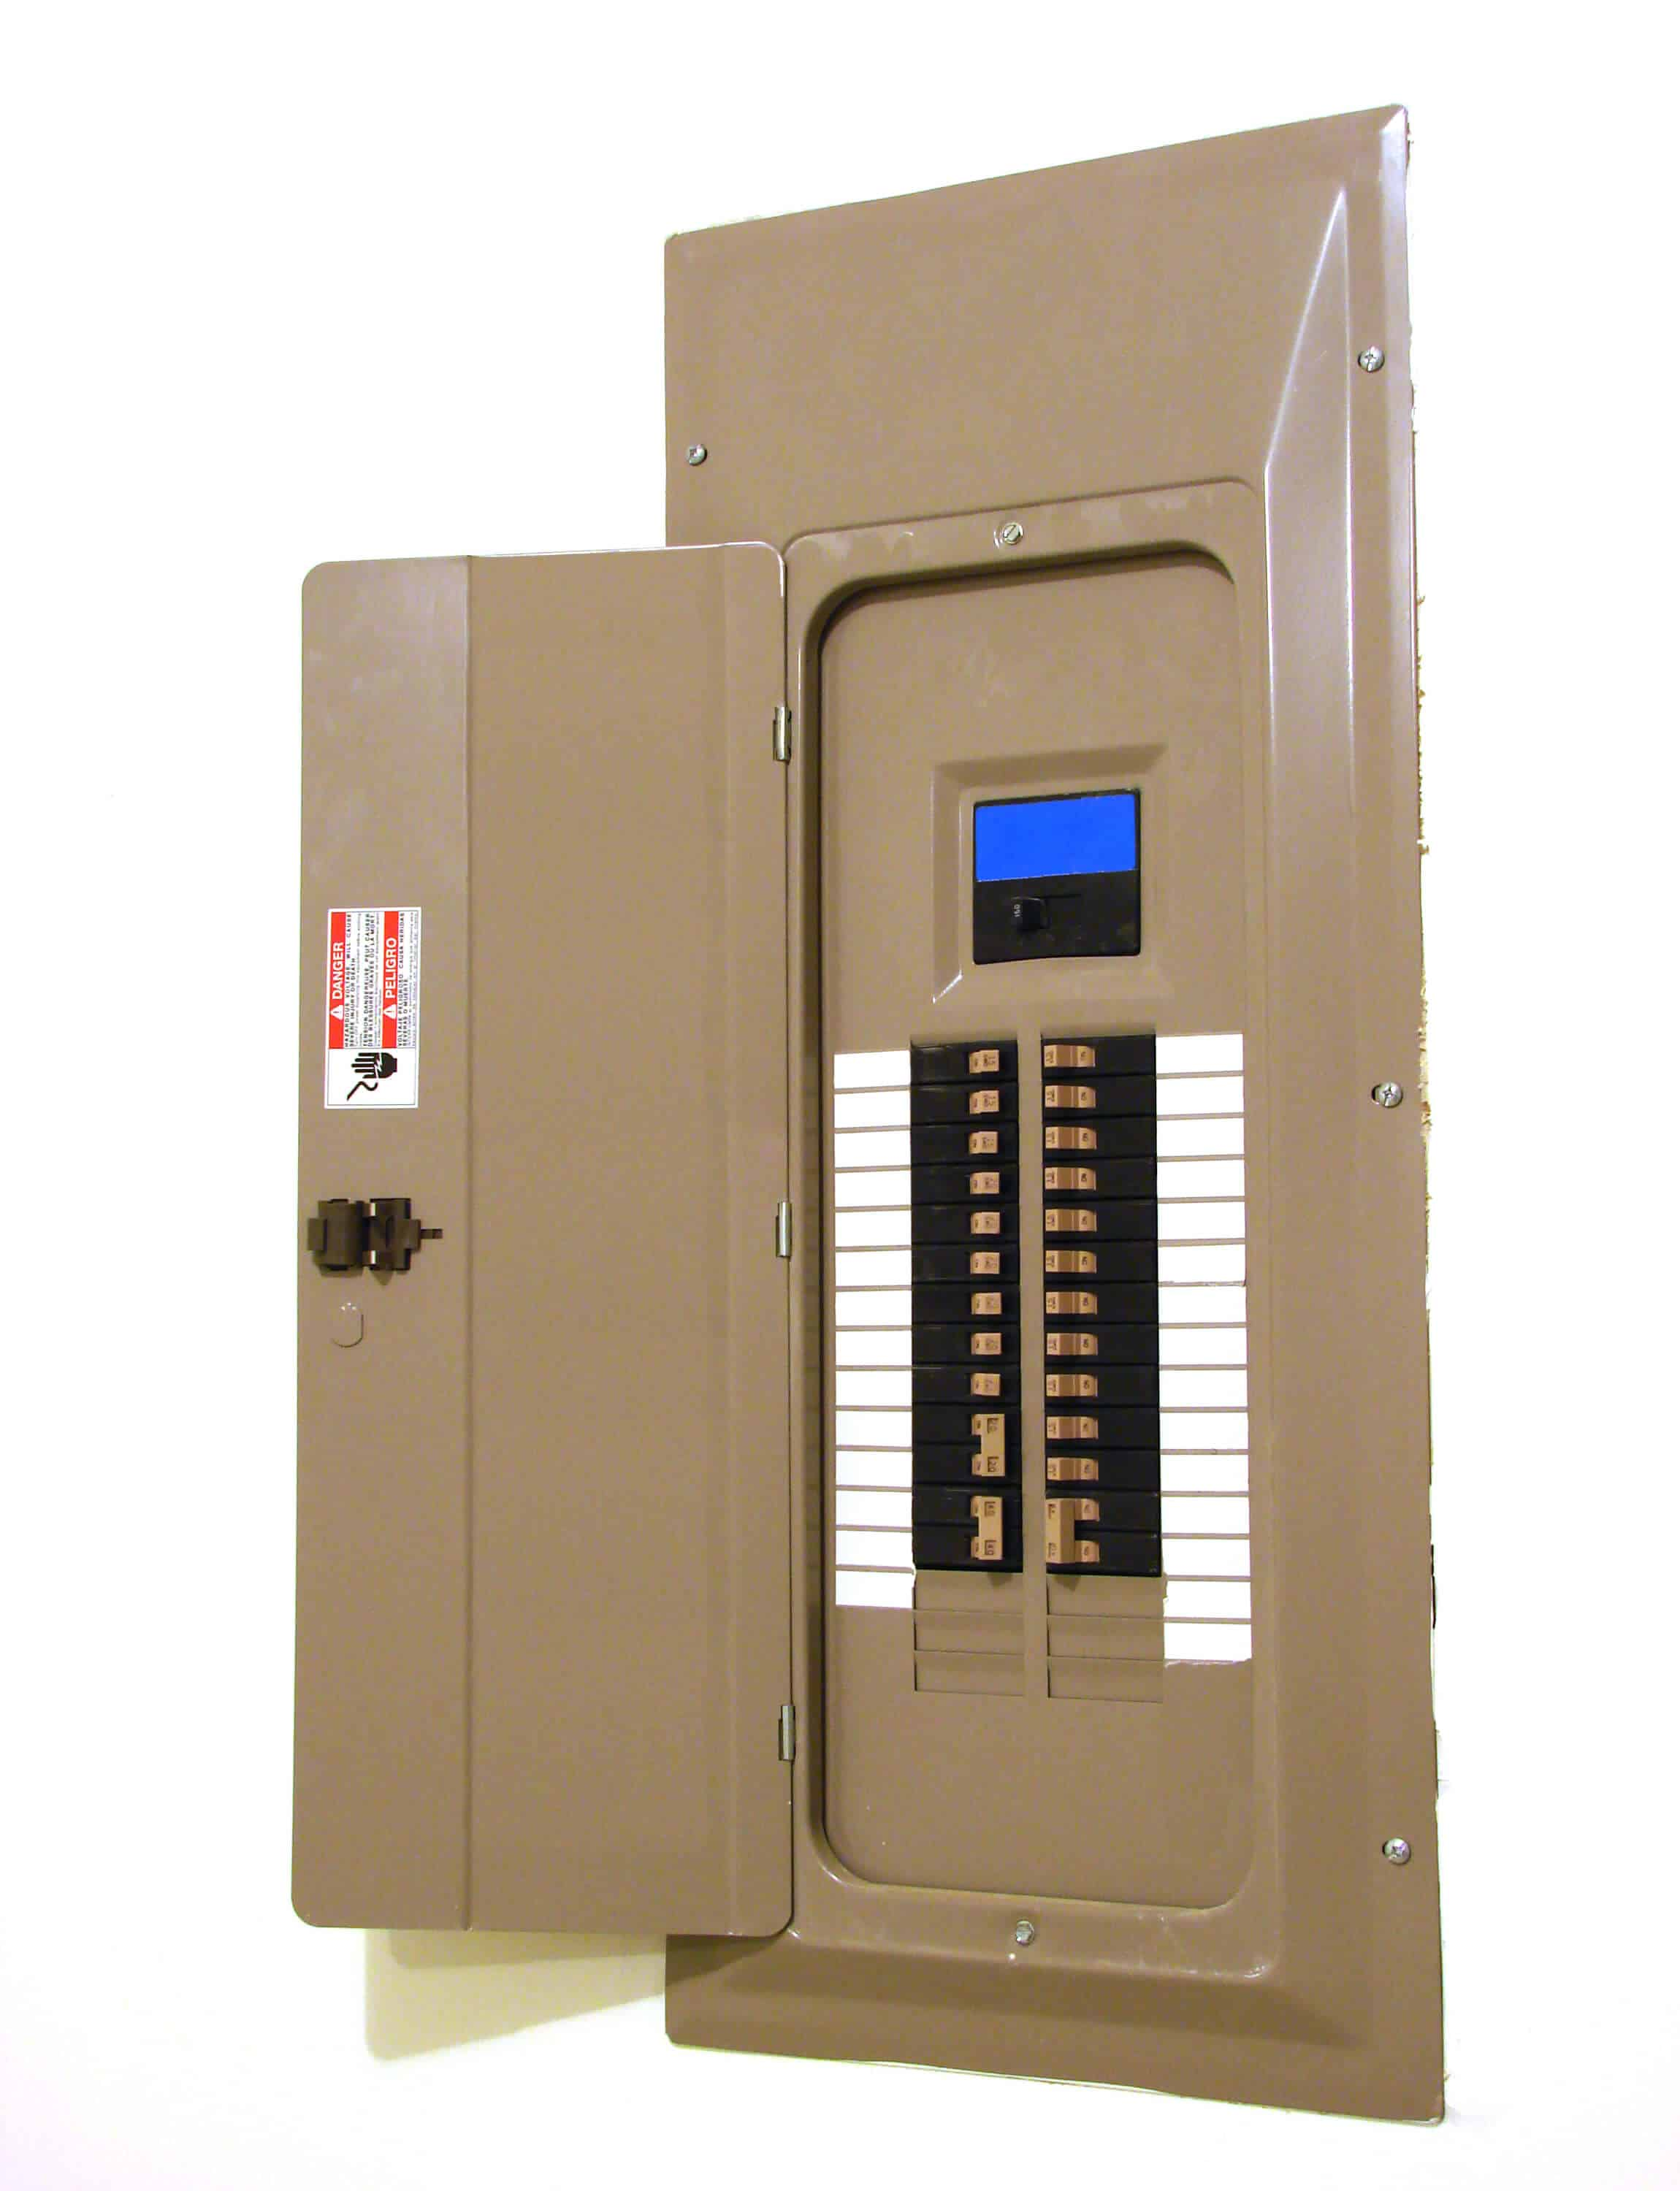 Upgrading the Electric Panel on replacing electrical panel, relocating electrical panel, expanding electrical panel,